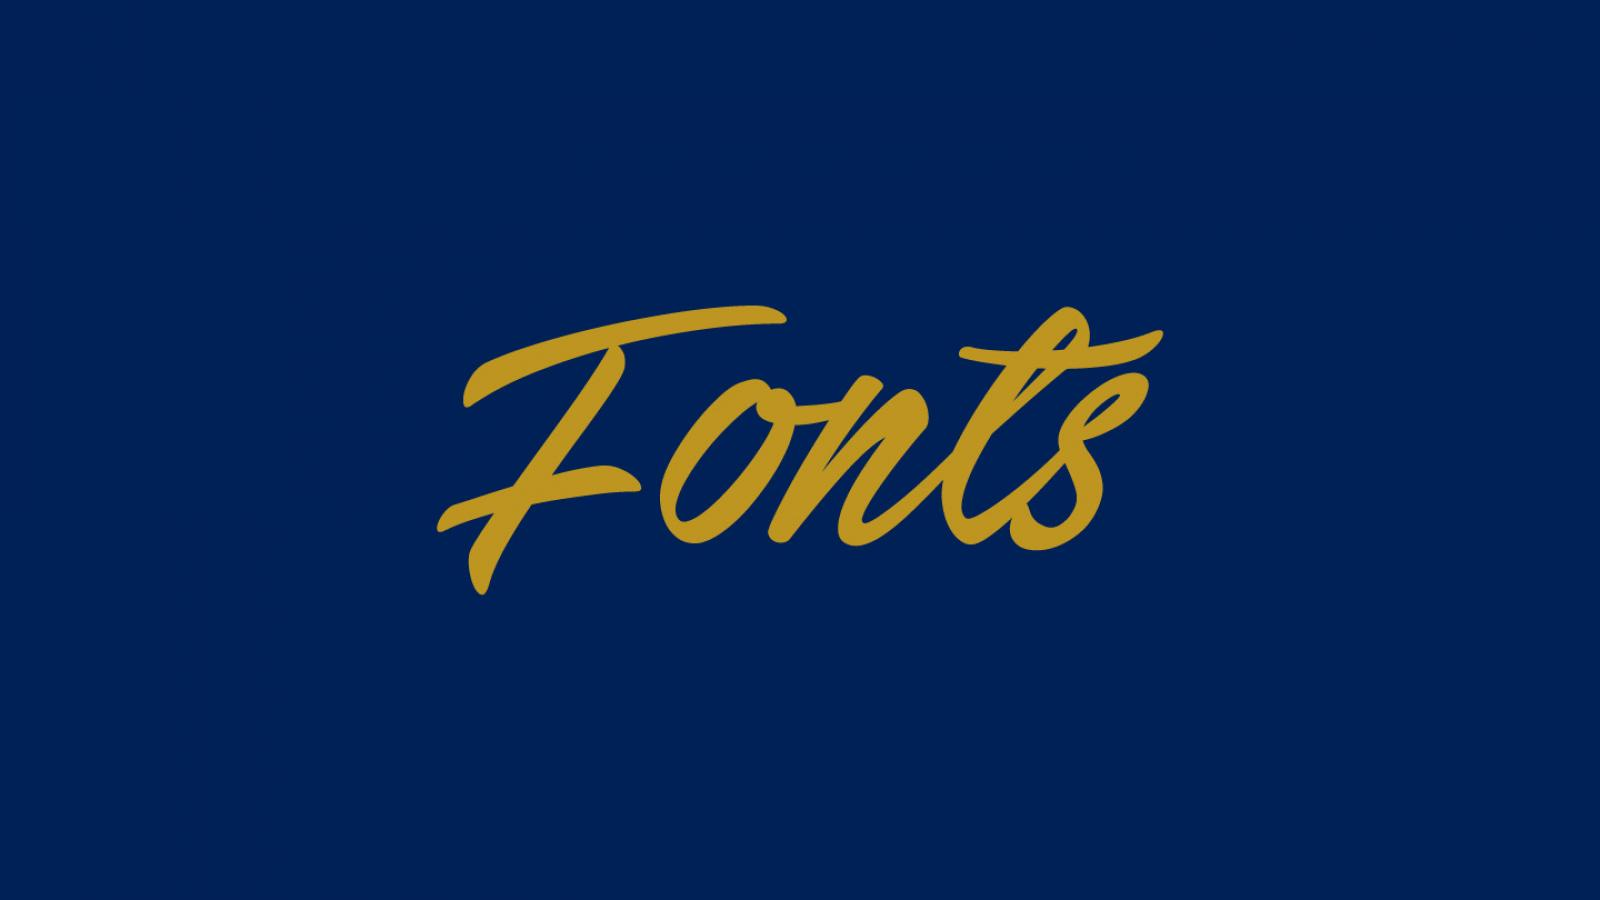 Friday Fresh Free Fonts - Junicode, Stackyard